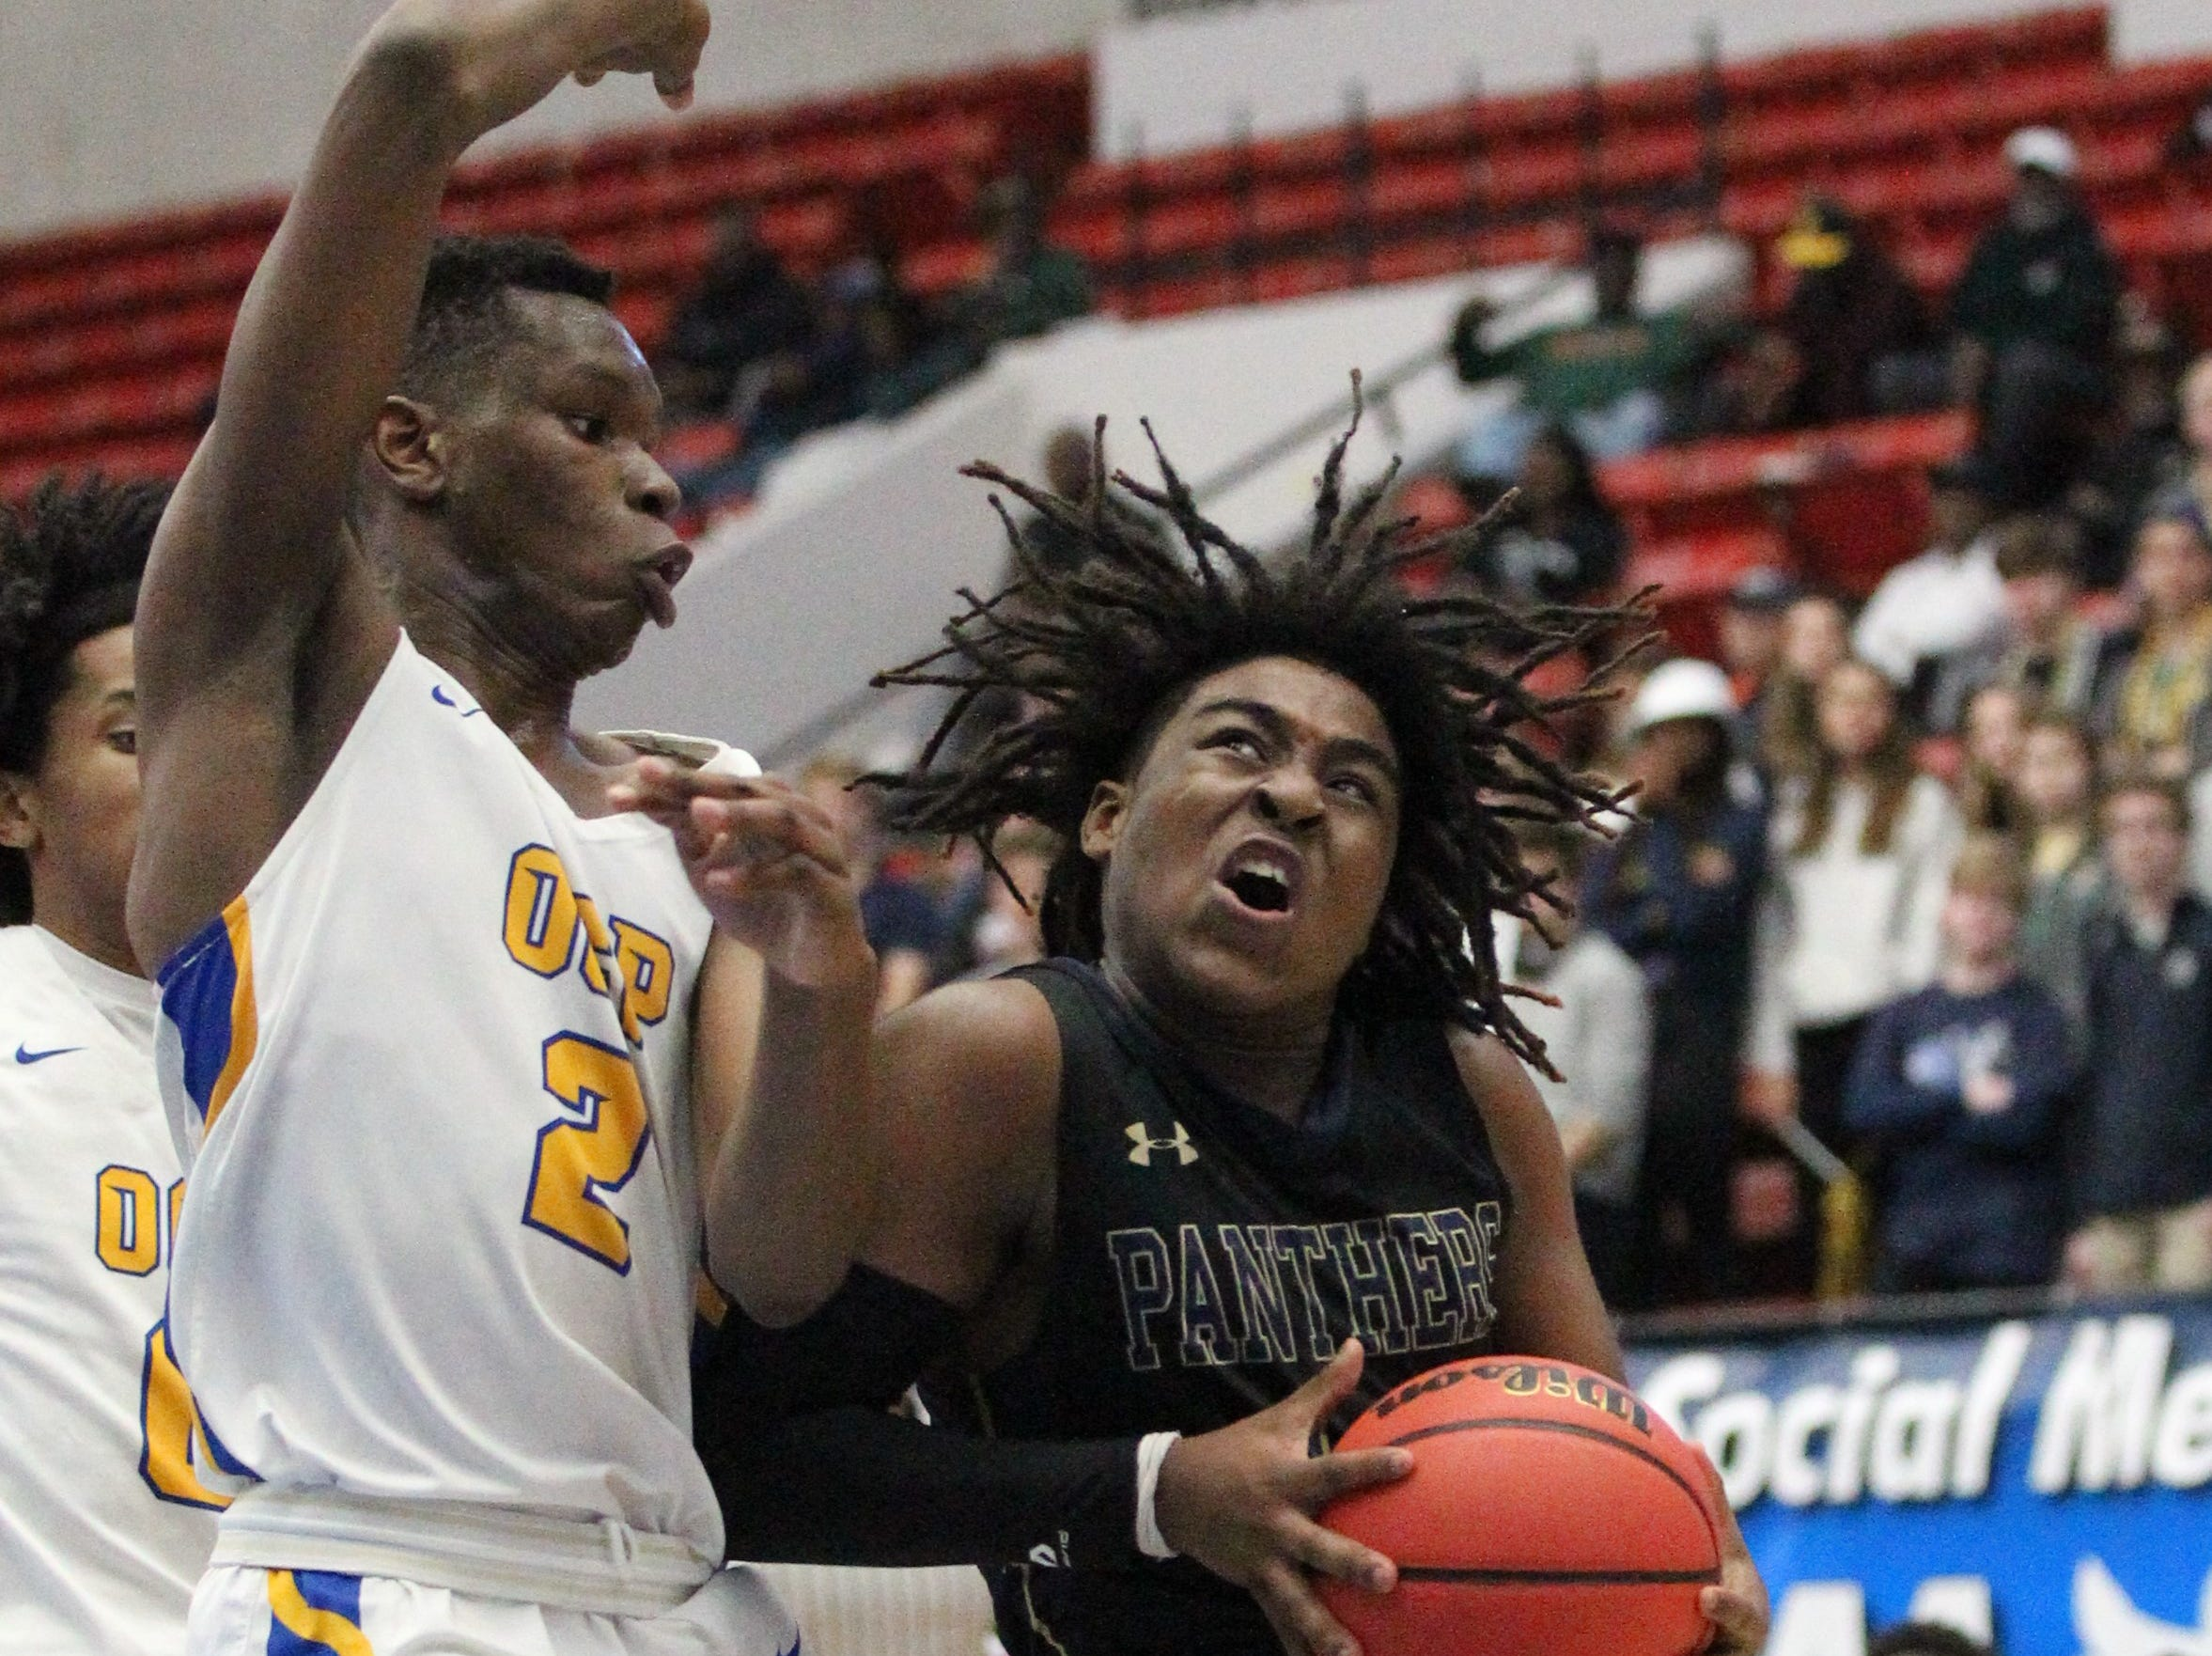 St. John Paul II's boys basketball team captured a Class 3A state championship with a 50-48 overtime victory against Orlando Christian Prep on Tuesday at the RP Funding Center in Lakeland.